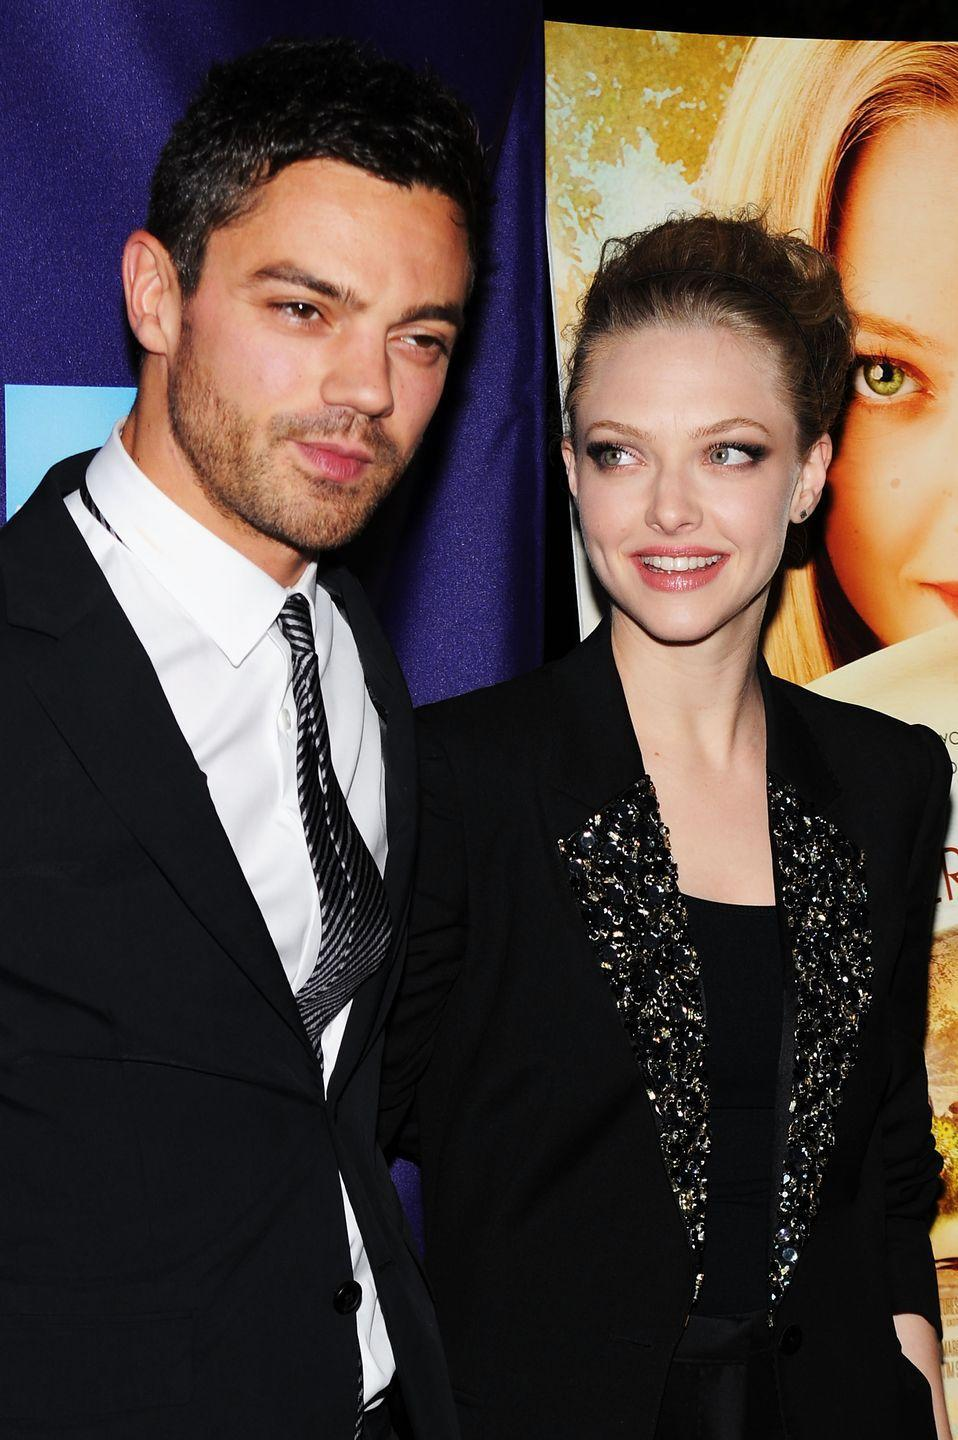 """<p>Seyfried and Cooper fell for one another on the set of <em>Mamma Mia </em>in 2007 and dated for three years before splitting. The former flames reunited in 2018 to film <em>Mamma Mia 2 </em>and it sounds like there are no hard feelings: """"We knew we were going to be working together [again] on set, going back to a part, which was certainly going to remind us of 10 years earlier,"""" Cooper told <a href=""""https://attitude.co.uk/article/dominic-cooper-and-zander-hodgson-cover-attitudes-august-issues/18538/"""" rel=""""nofollow noopener"""" target=""""_blank"""" data-ylk=""""slk:Attitude Magazine"""" class=""""link rapid-noclick-resp""""><em>Attitude Magazine</em></a>. """"It was a pleasant atmosphere. It was really interesting to see how different our lives are after 10 years<em>.""""</em></p>"""